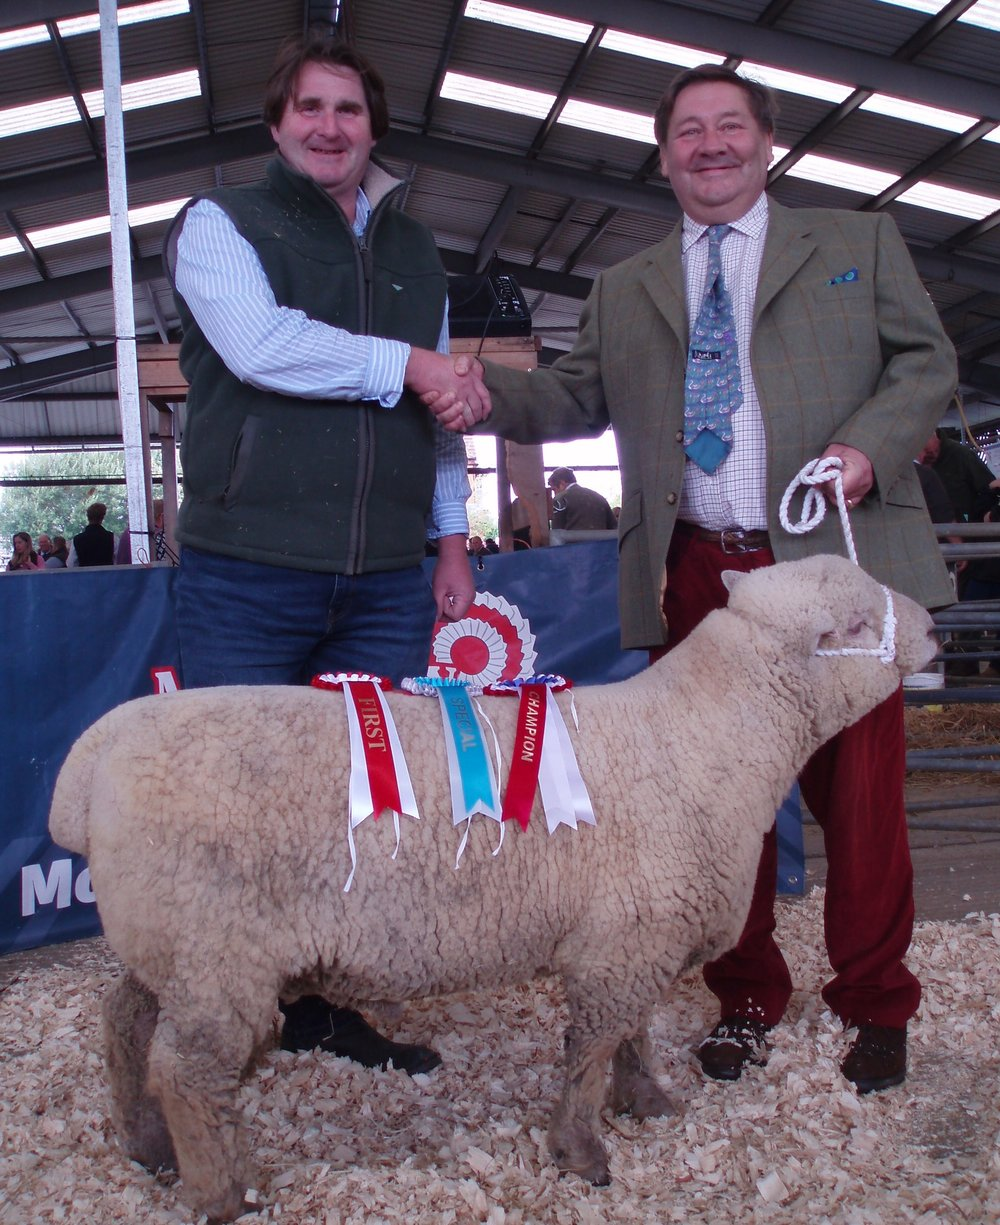 Show Champion ; shearling ram de Pibrac 'Teddy' 17/00231, bred by Mr Nigel Barrington-Fuller, pictured with judge Mr Stephen Humphrey